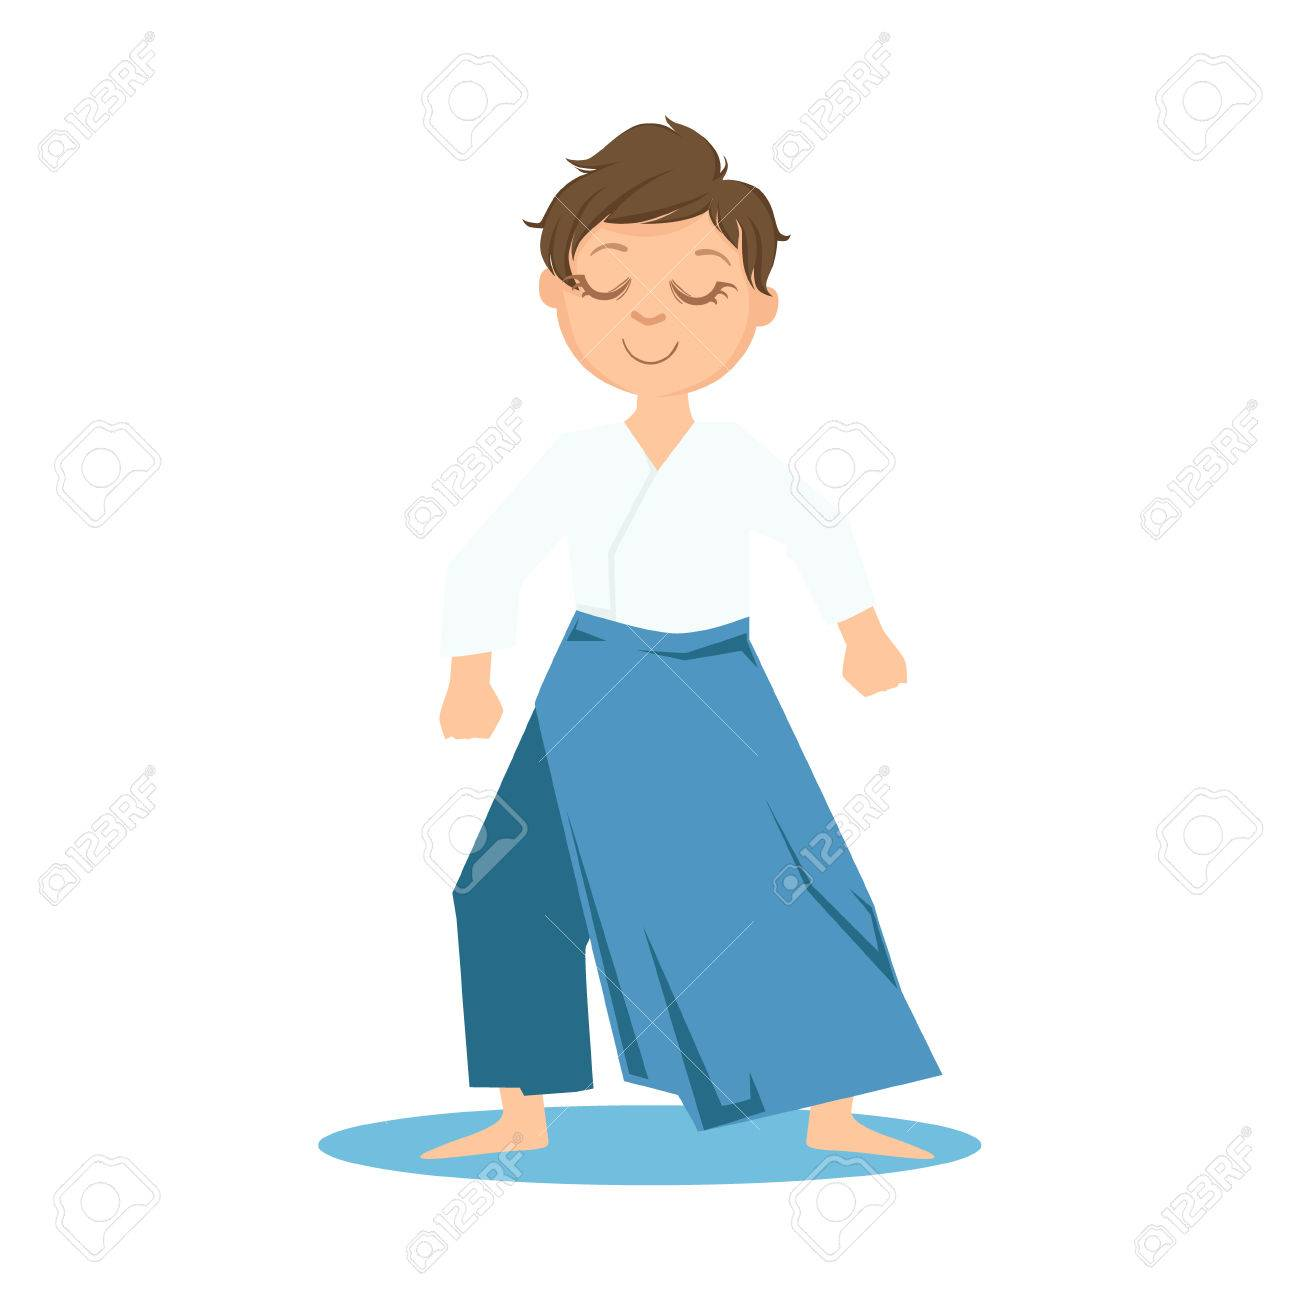 Boy In Wide Trousers Doing Zen Relaxed Stance On Karate Martial Royalty Free Cliparts Vectors And Stock Illustration Image 67198294